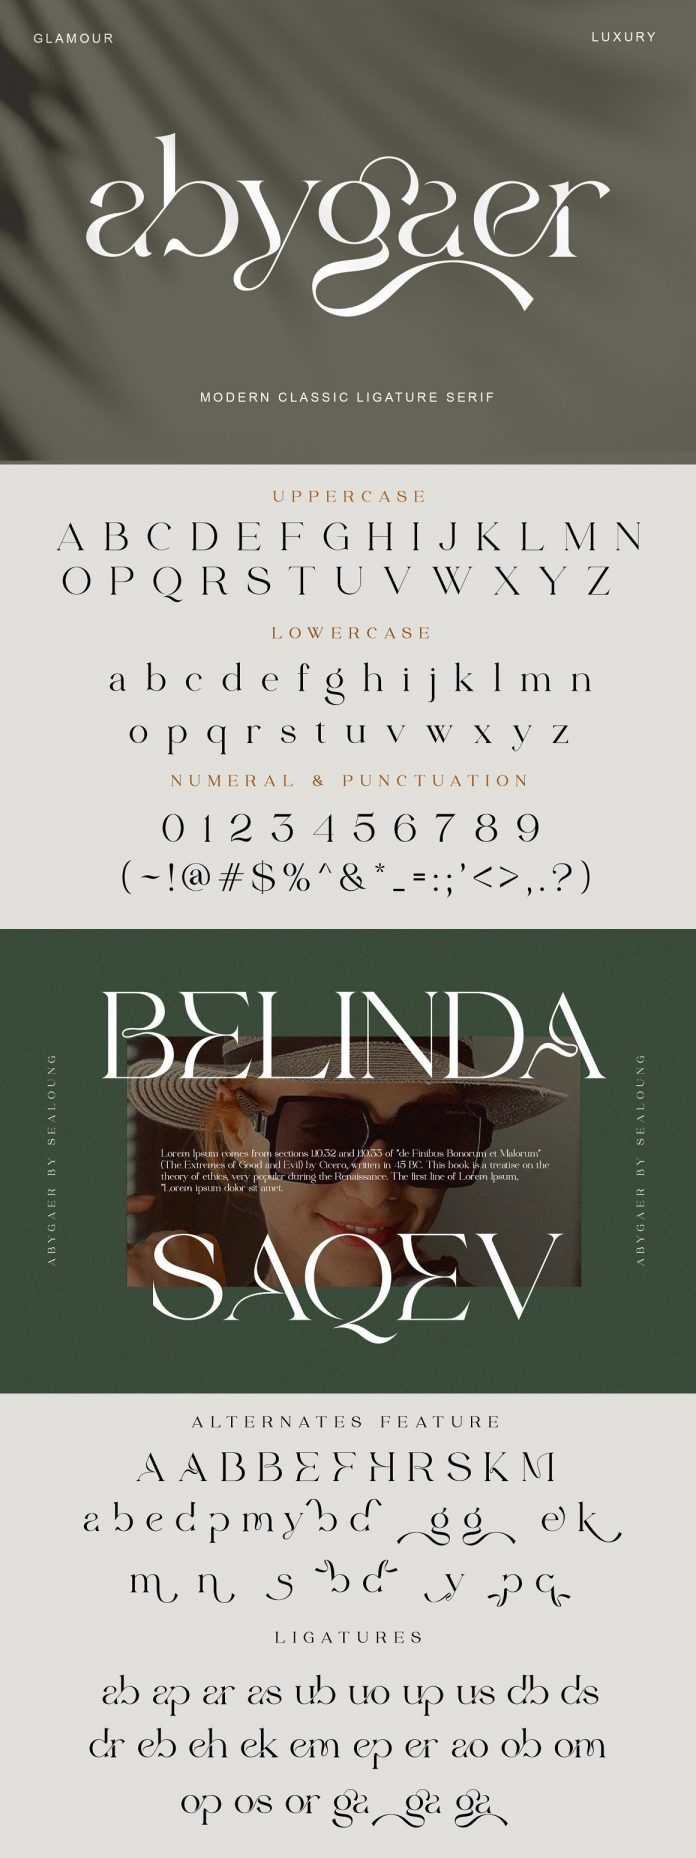 Abygaer font by Sealoung